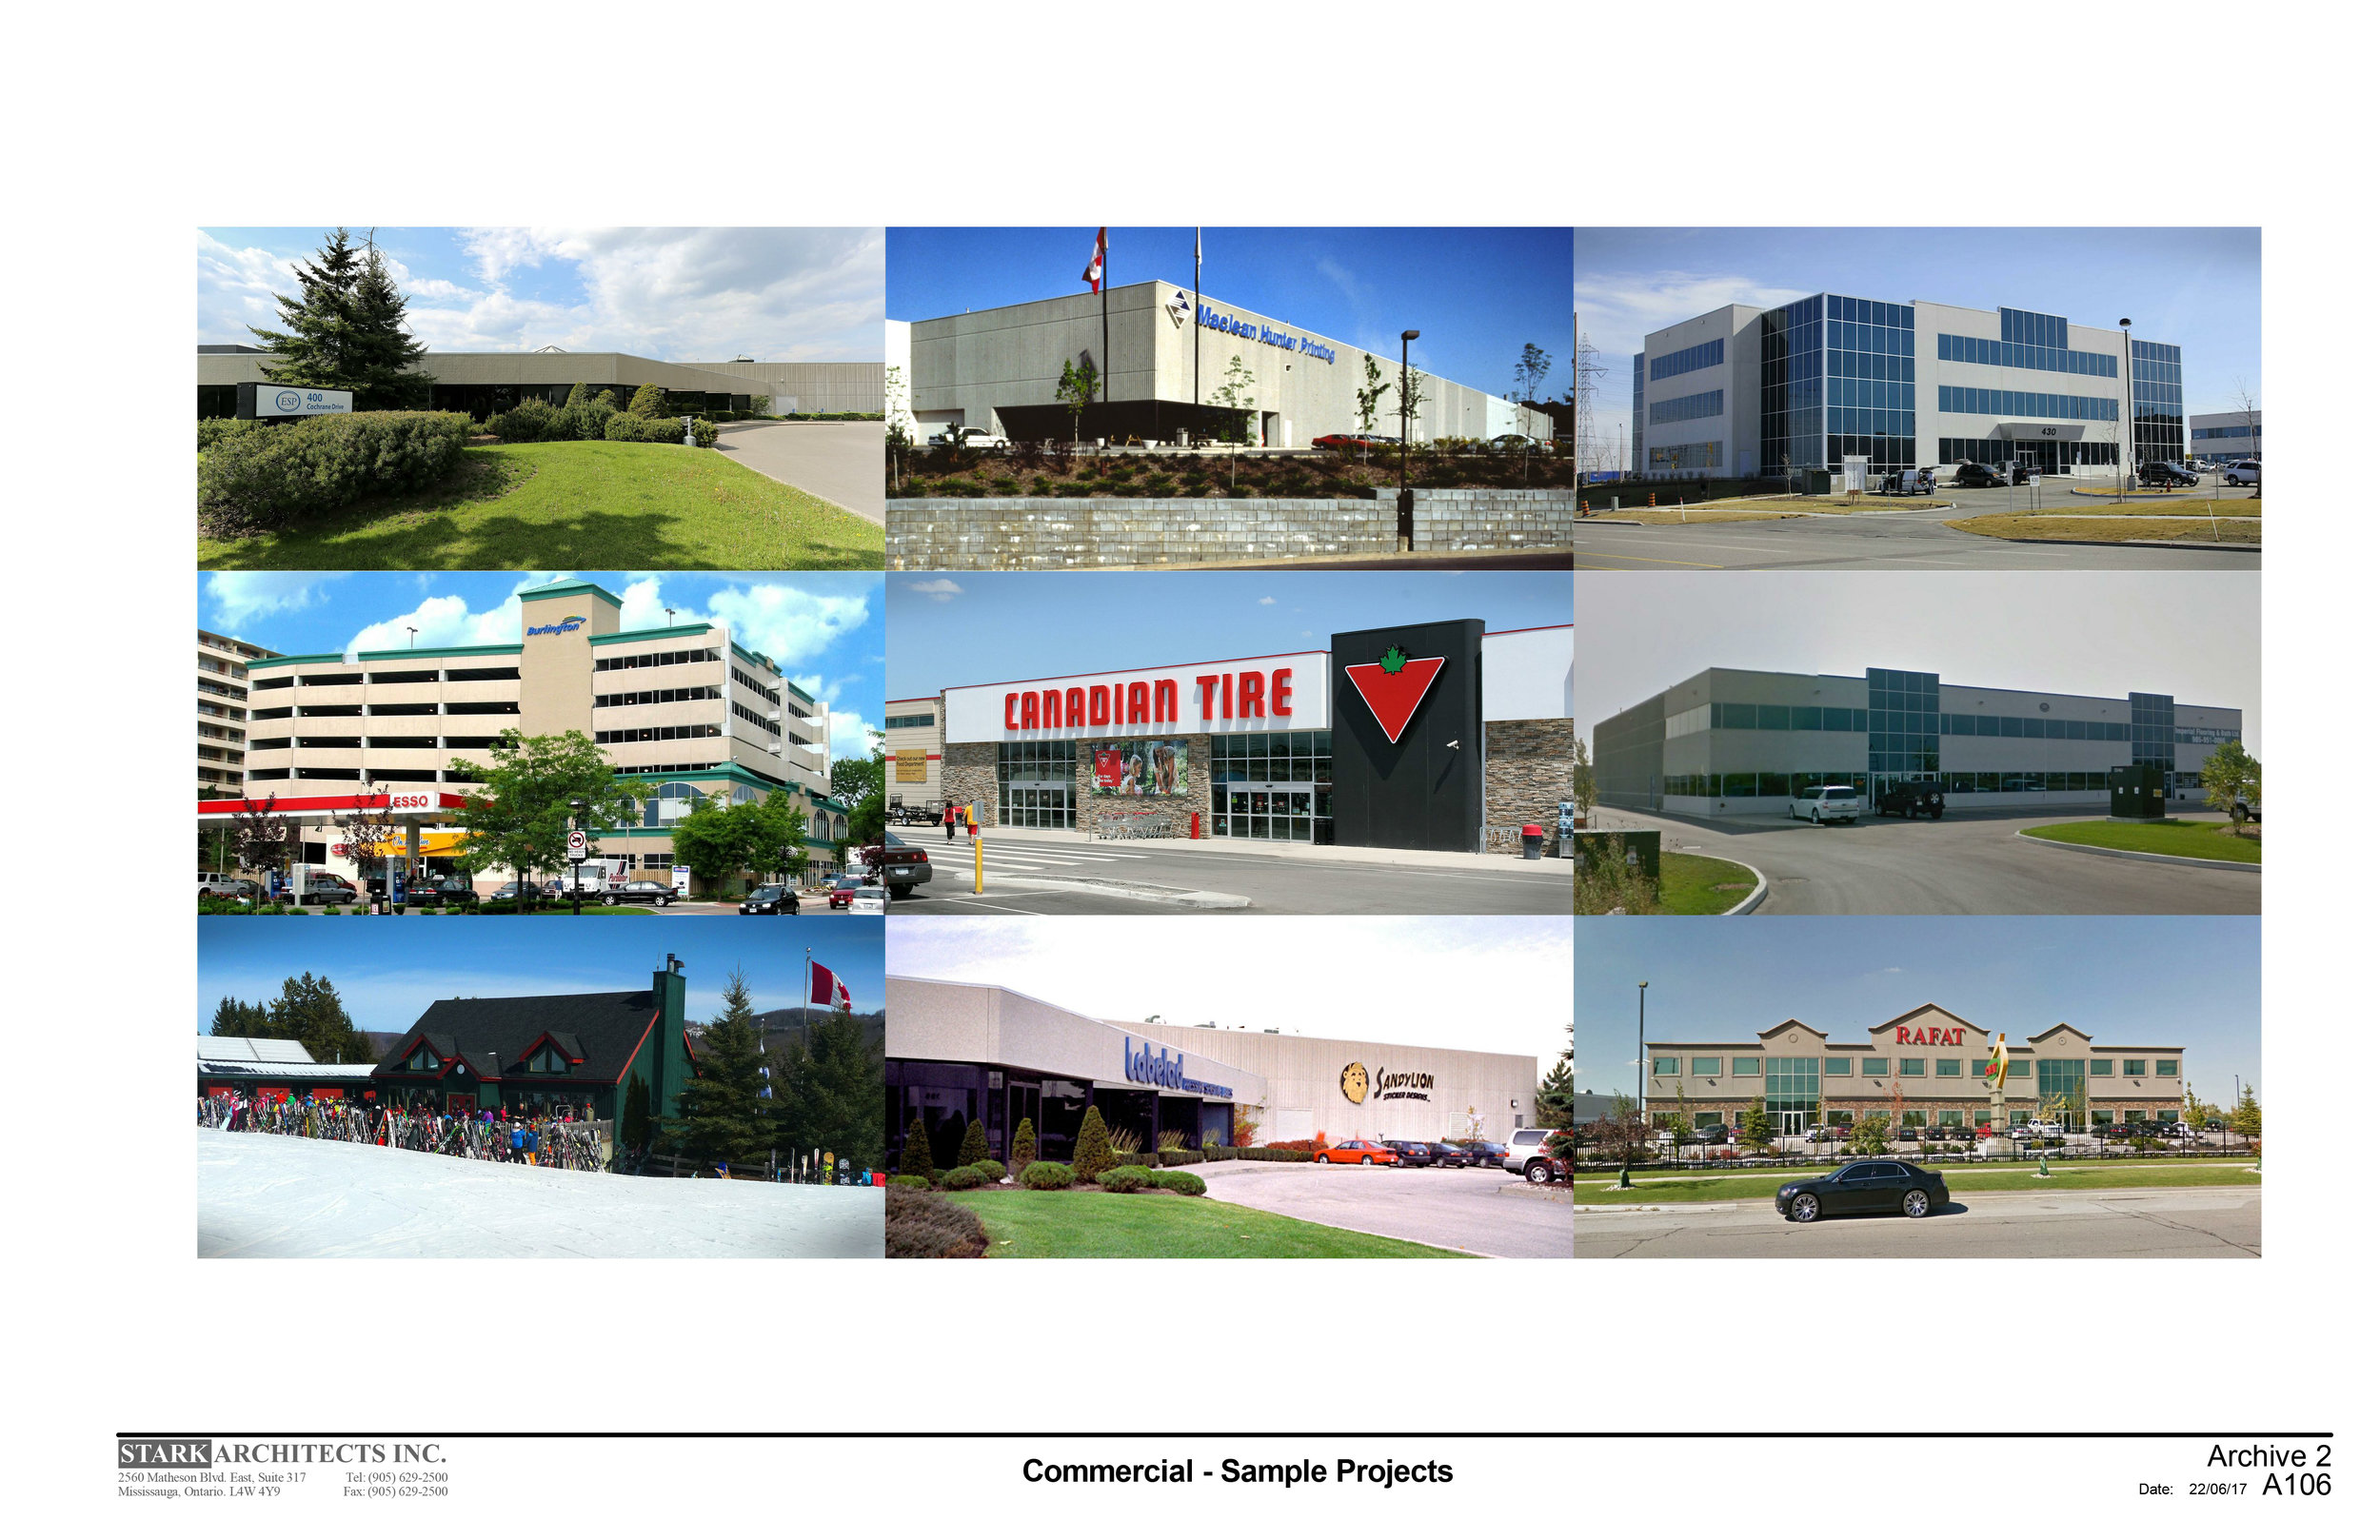 STARK ARCHITECTS INC - SAMPLE PROJECTS - COMMERCIAL - 22-06-17 - A106.jpg